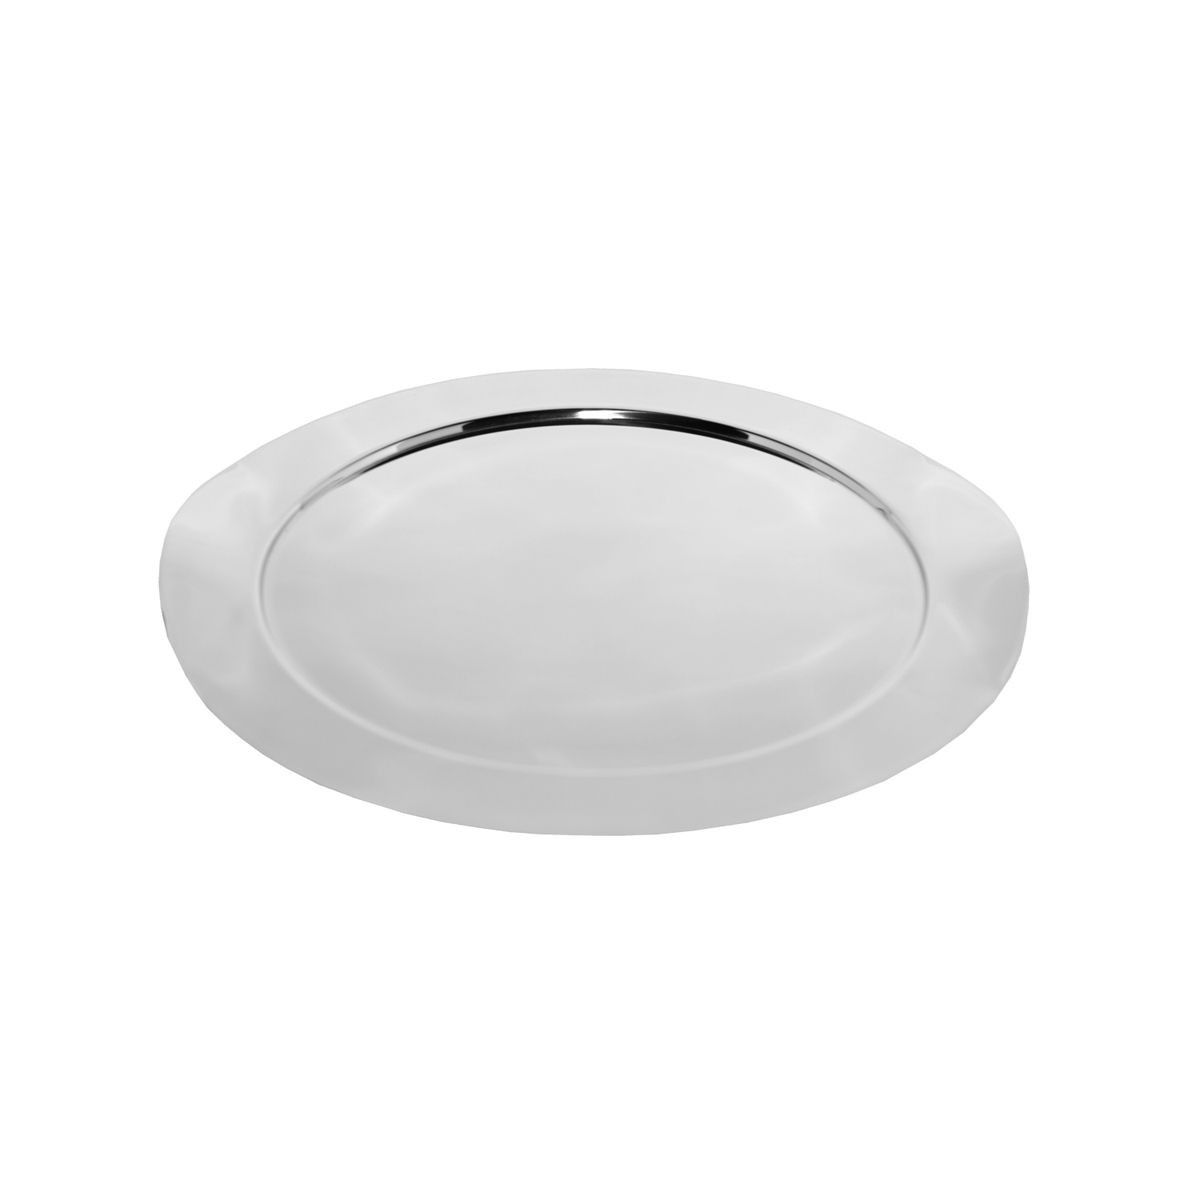 "Service Ideas SM-40 SteelForme Stainless Steel Round Tray, 16""D"